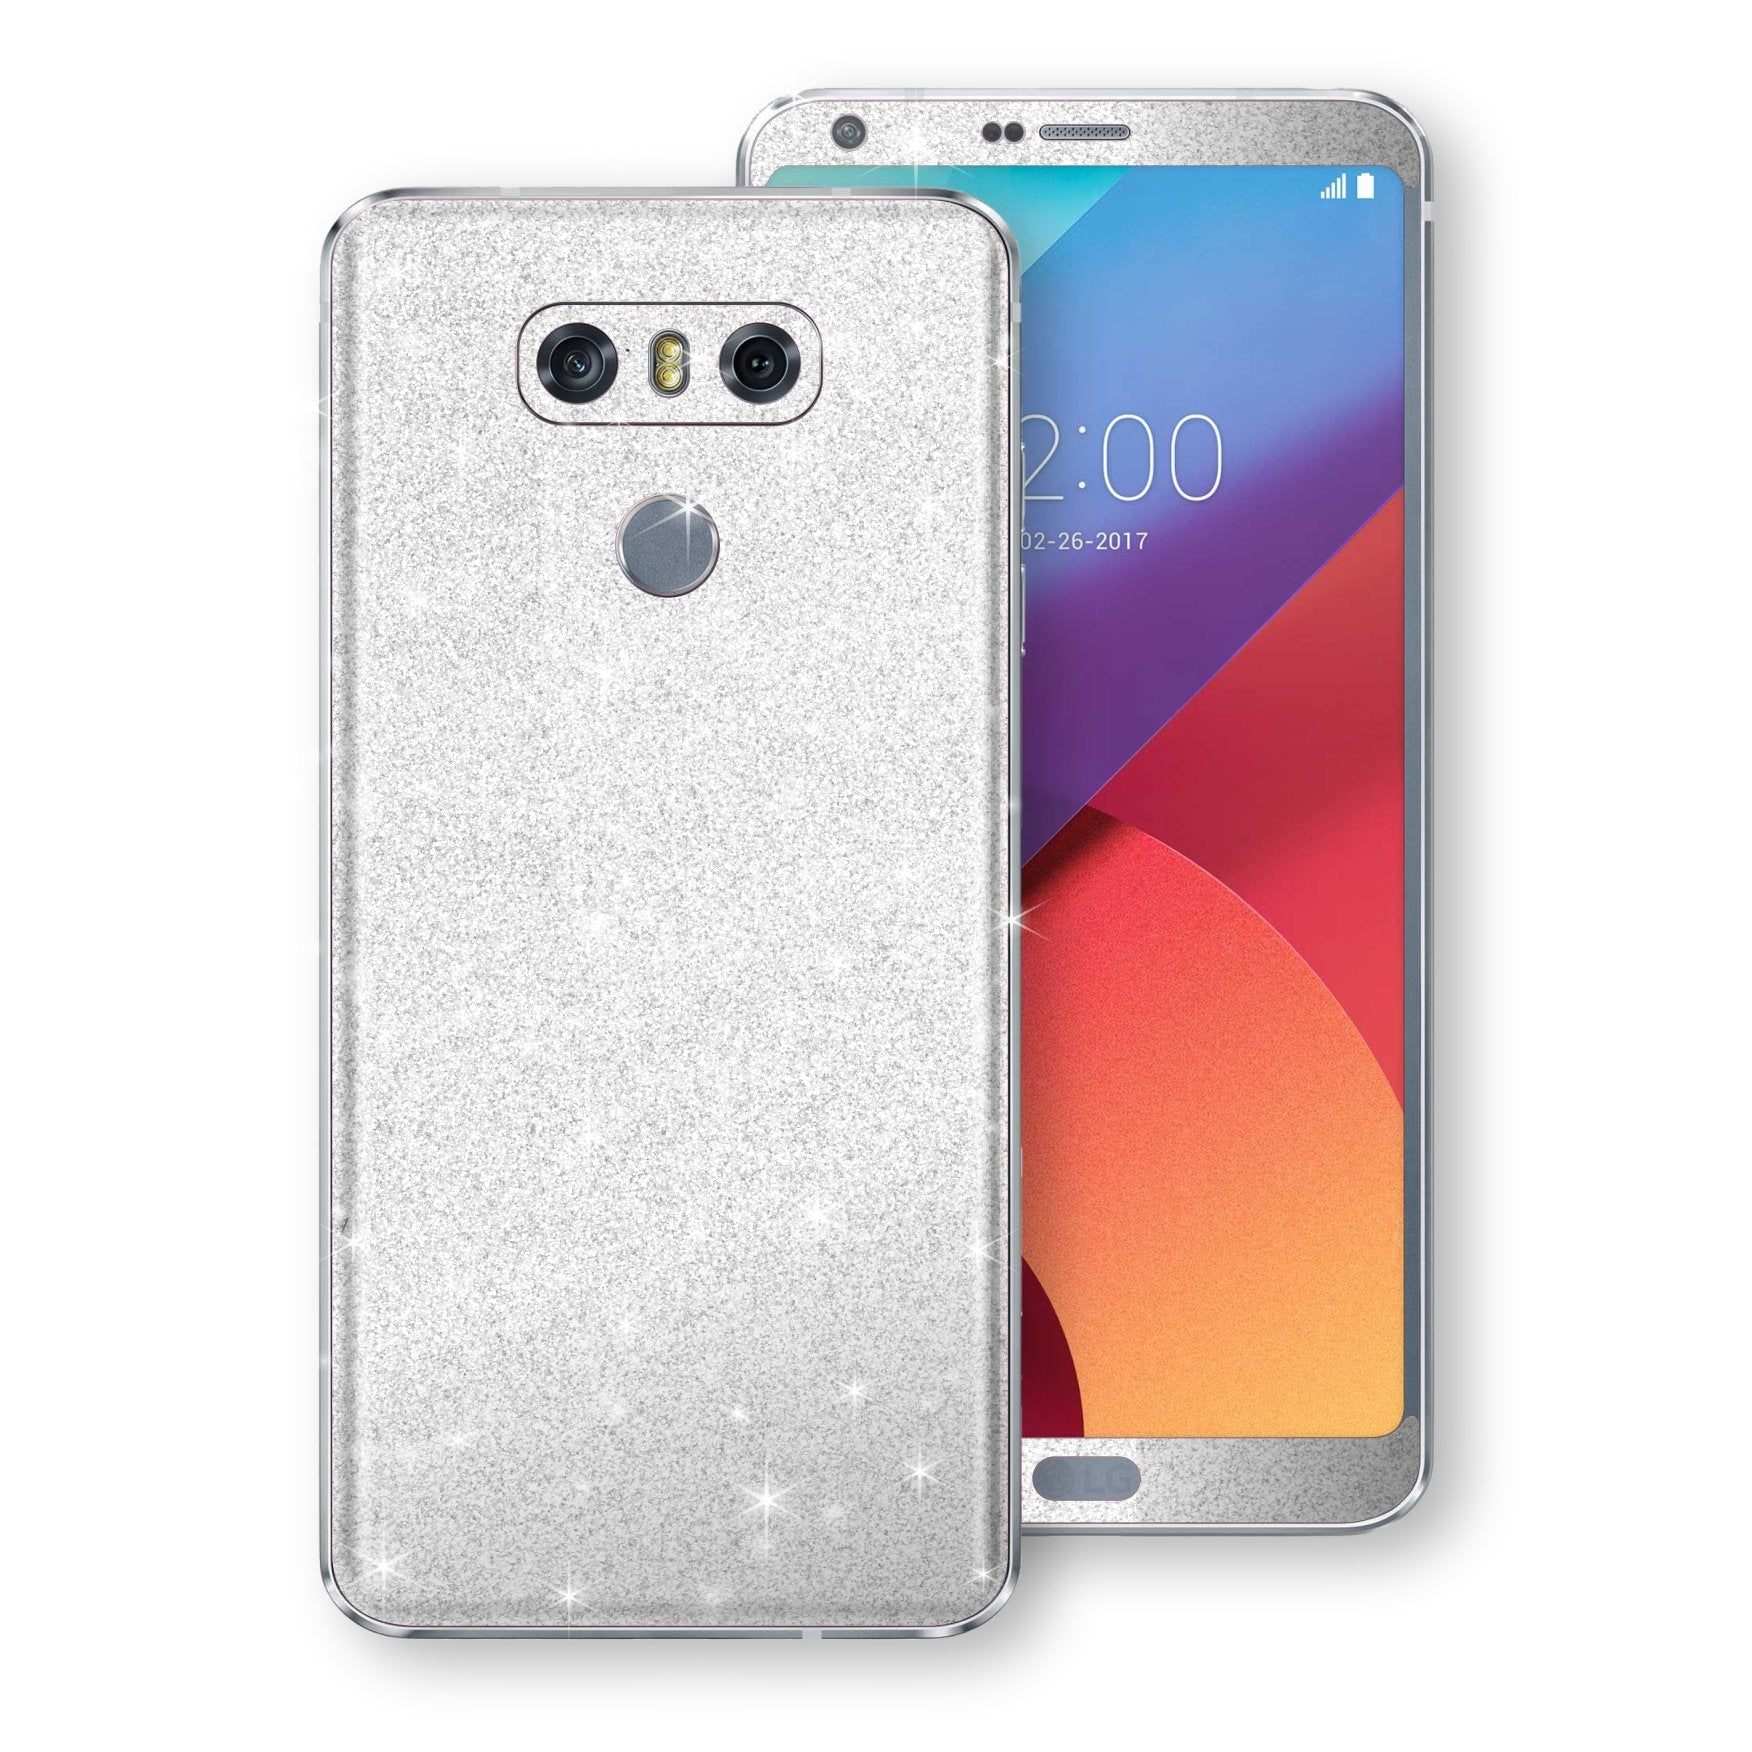 LG G6 Diamond White Shimmering, Sparkling, Glitter Skin, Decal, Wrap, Protector, Cover by EasySkinz | EasySkinz.com